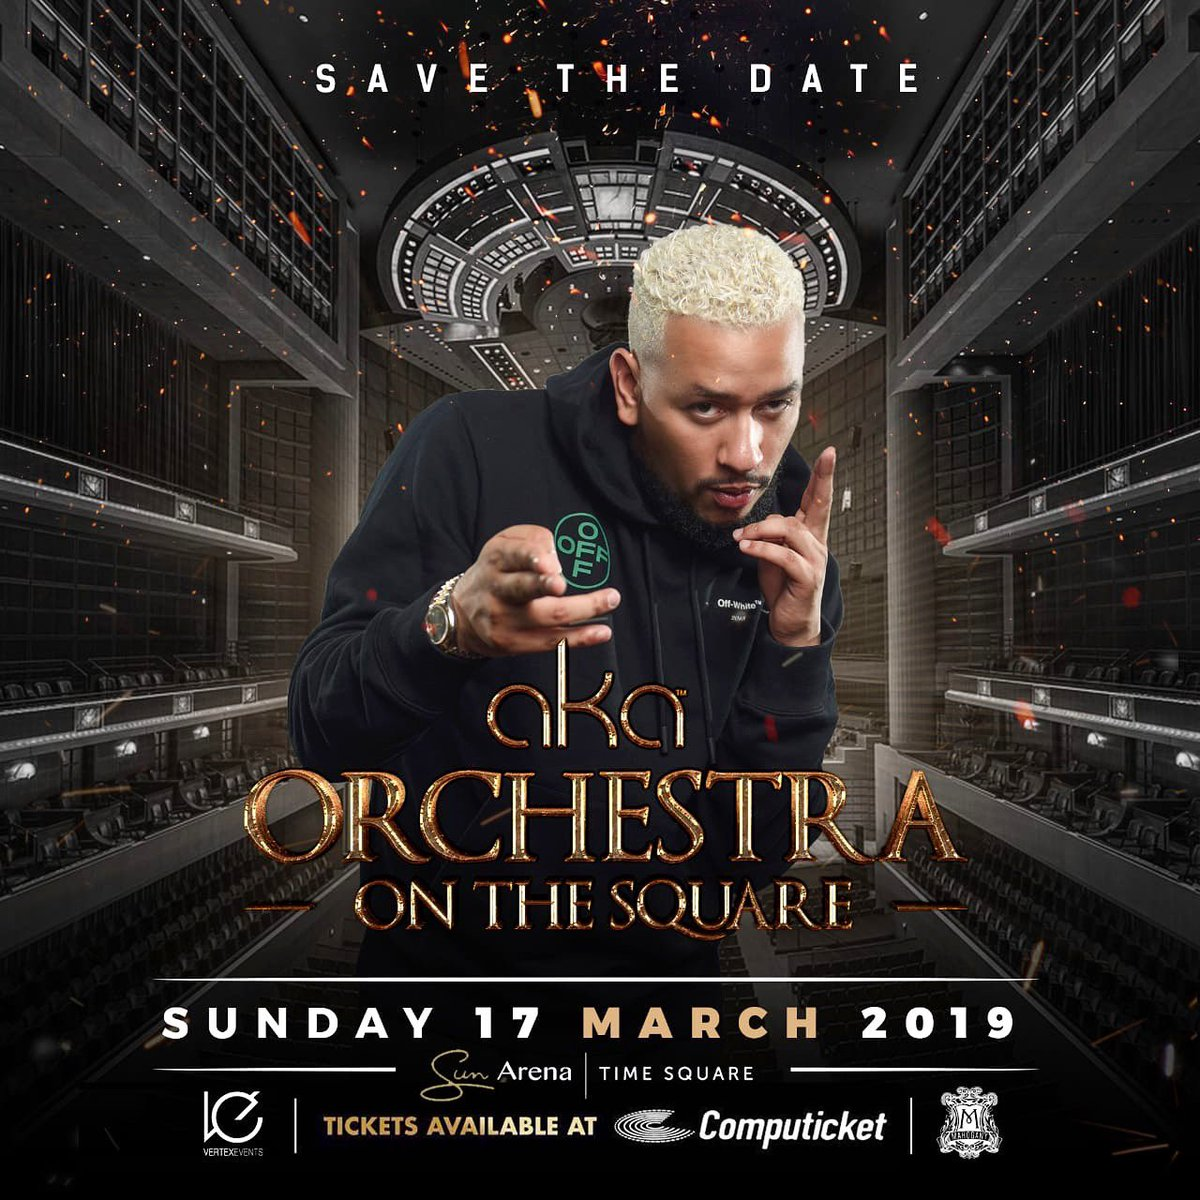 Now ....... GO BUY THESE TICKETS BRUH!!!!! #AkaOrchestraOnTheSquare 💸💸